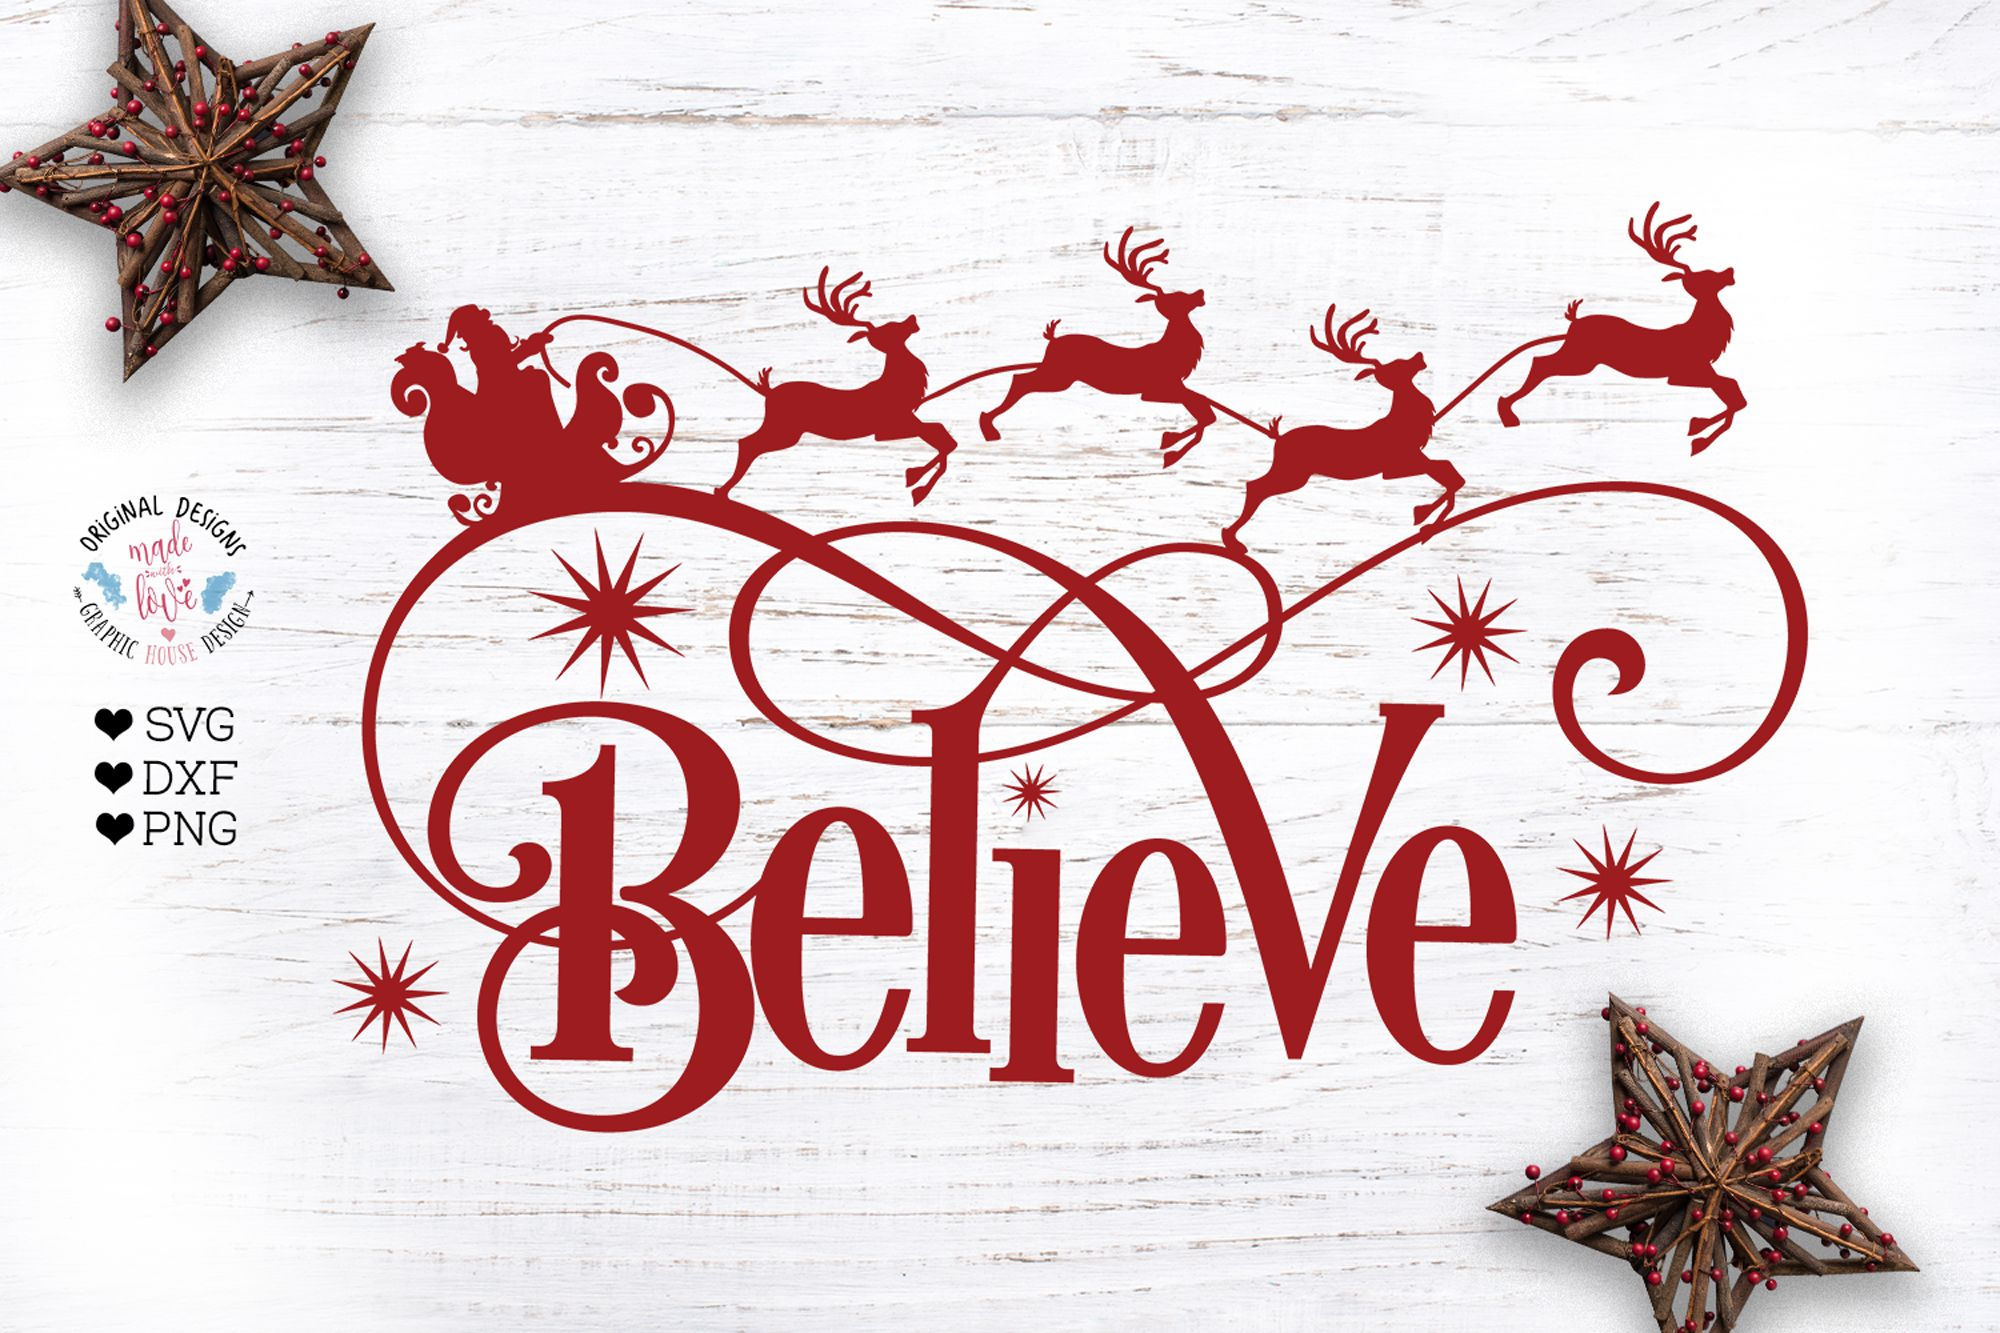 Pin on Christmas SVG Files and Designs